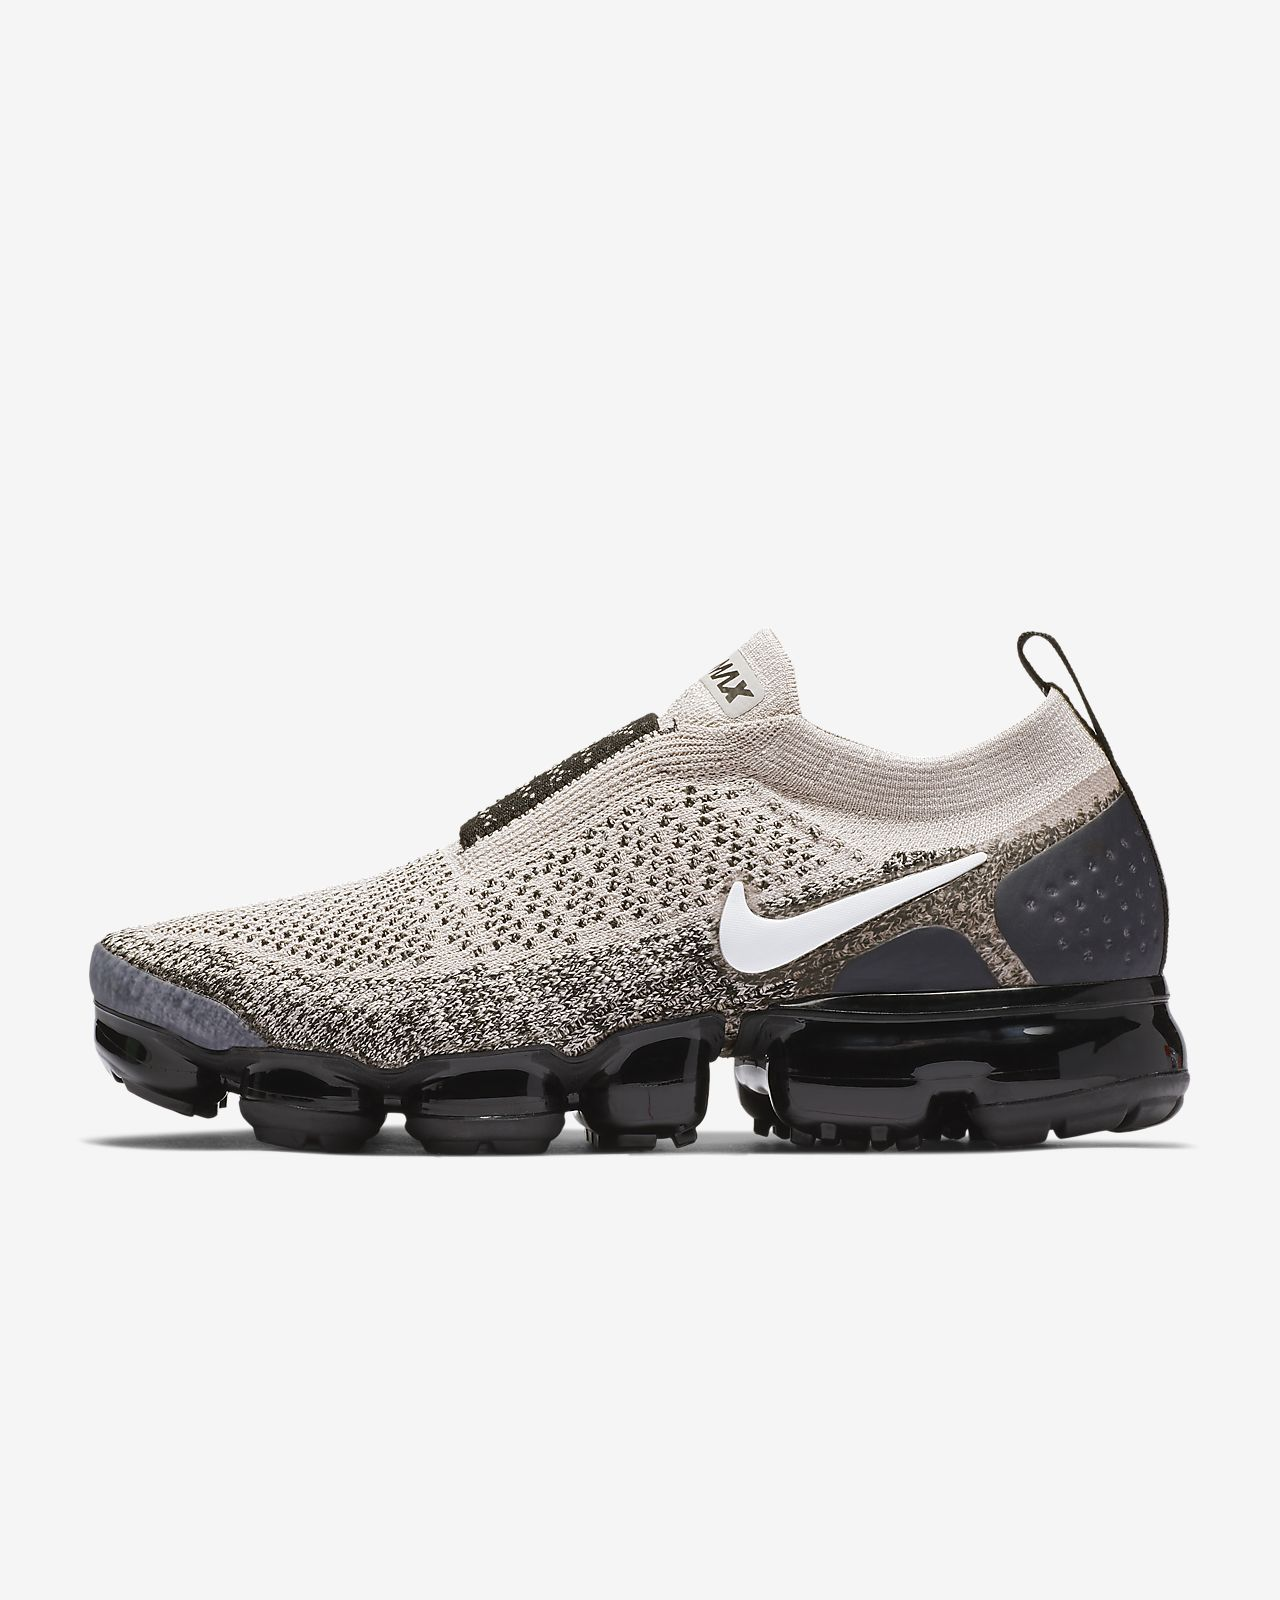 detailed look 041a1 d3454 Nike Air VaporMax Flyknit Moc 2 Zapatillas - Mujer